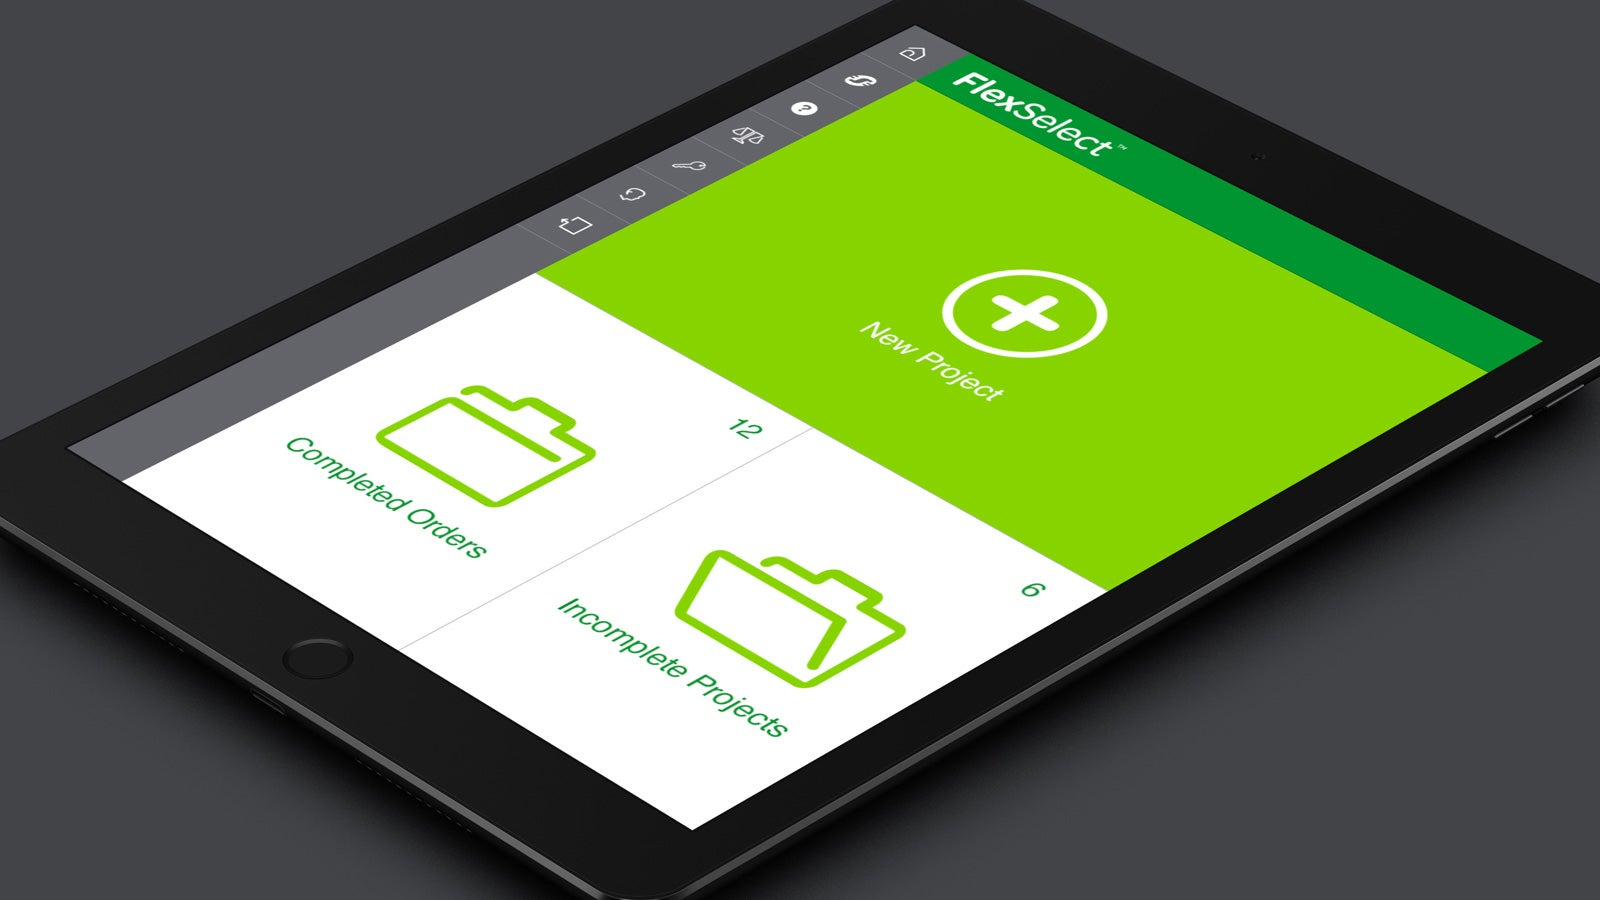 Image of FlexSelect app on a tablet